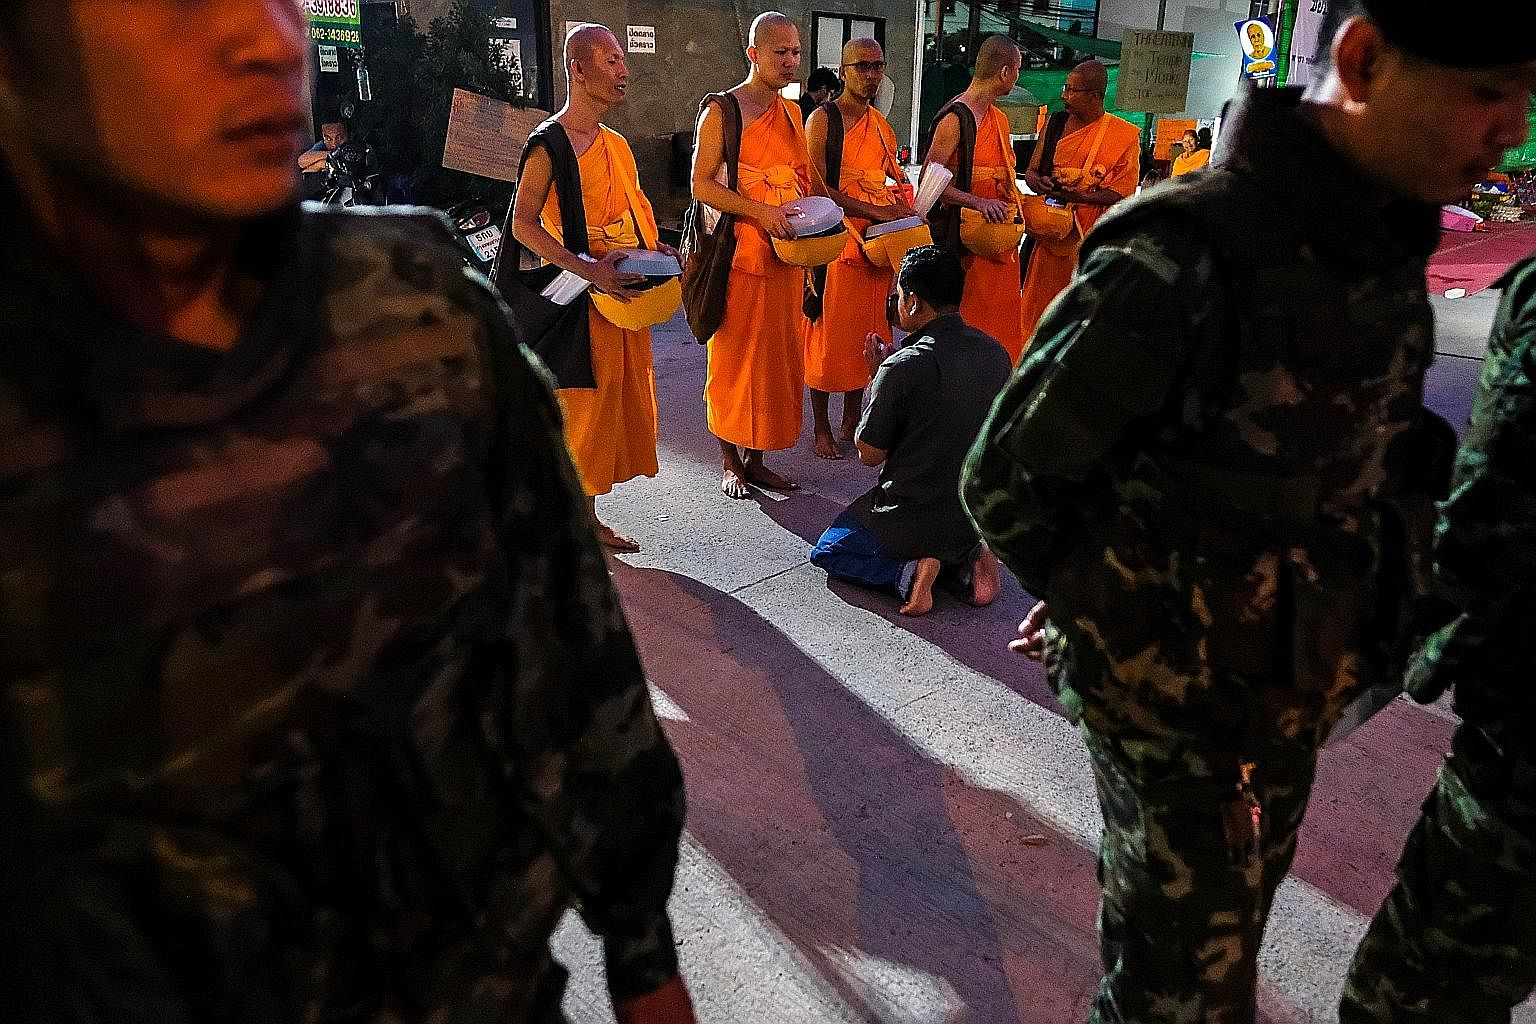 Monks receiving food from supporters. Amid a manhunt being carried out under the junta's wide-ranging powers, the temple has staged an international media campaign and alleged that its food supply has been curtailed.